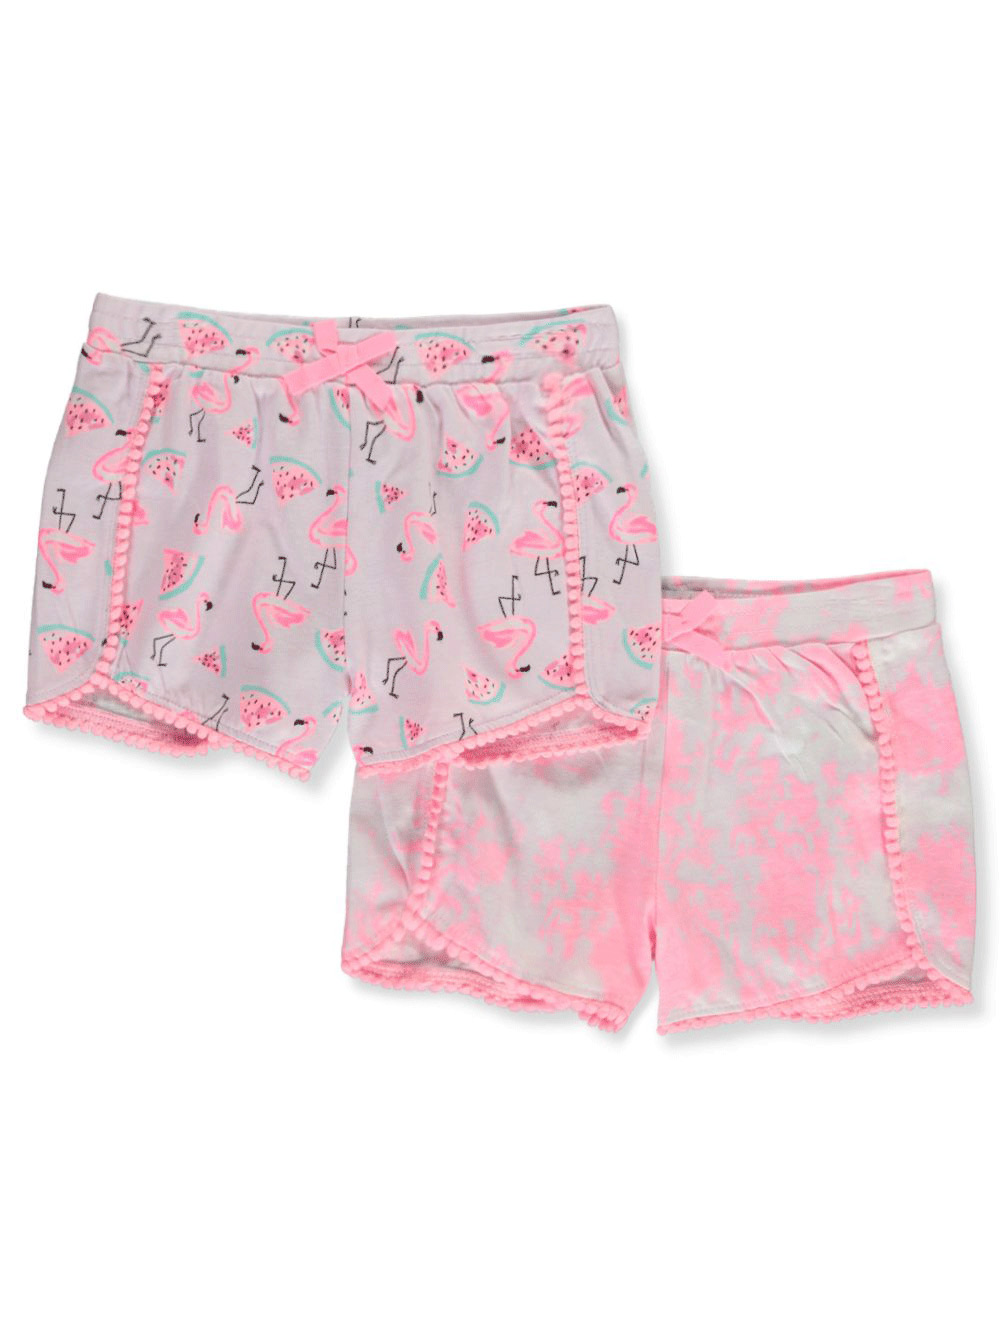 Girls Assorted Shorts